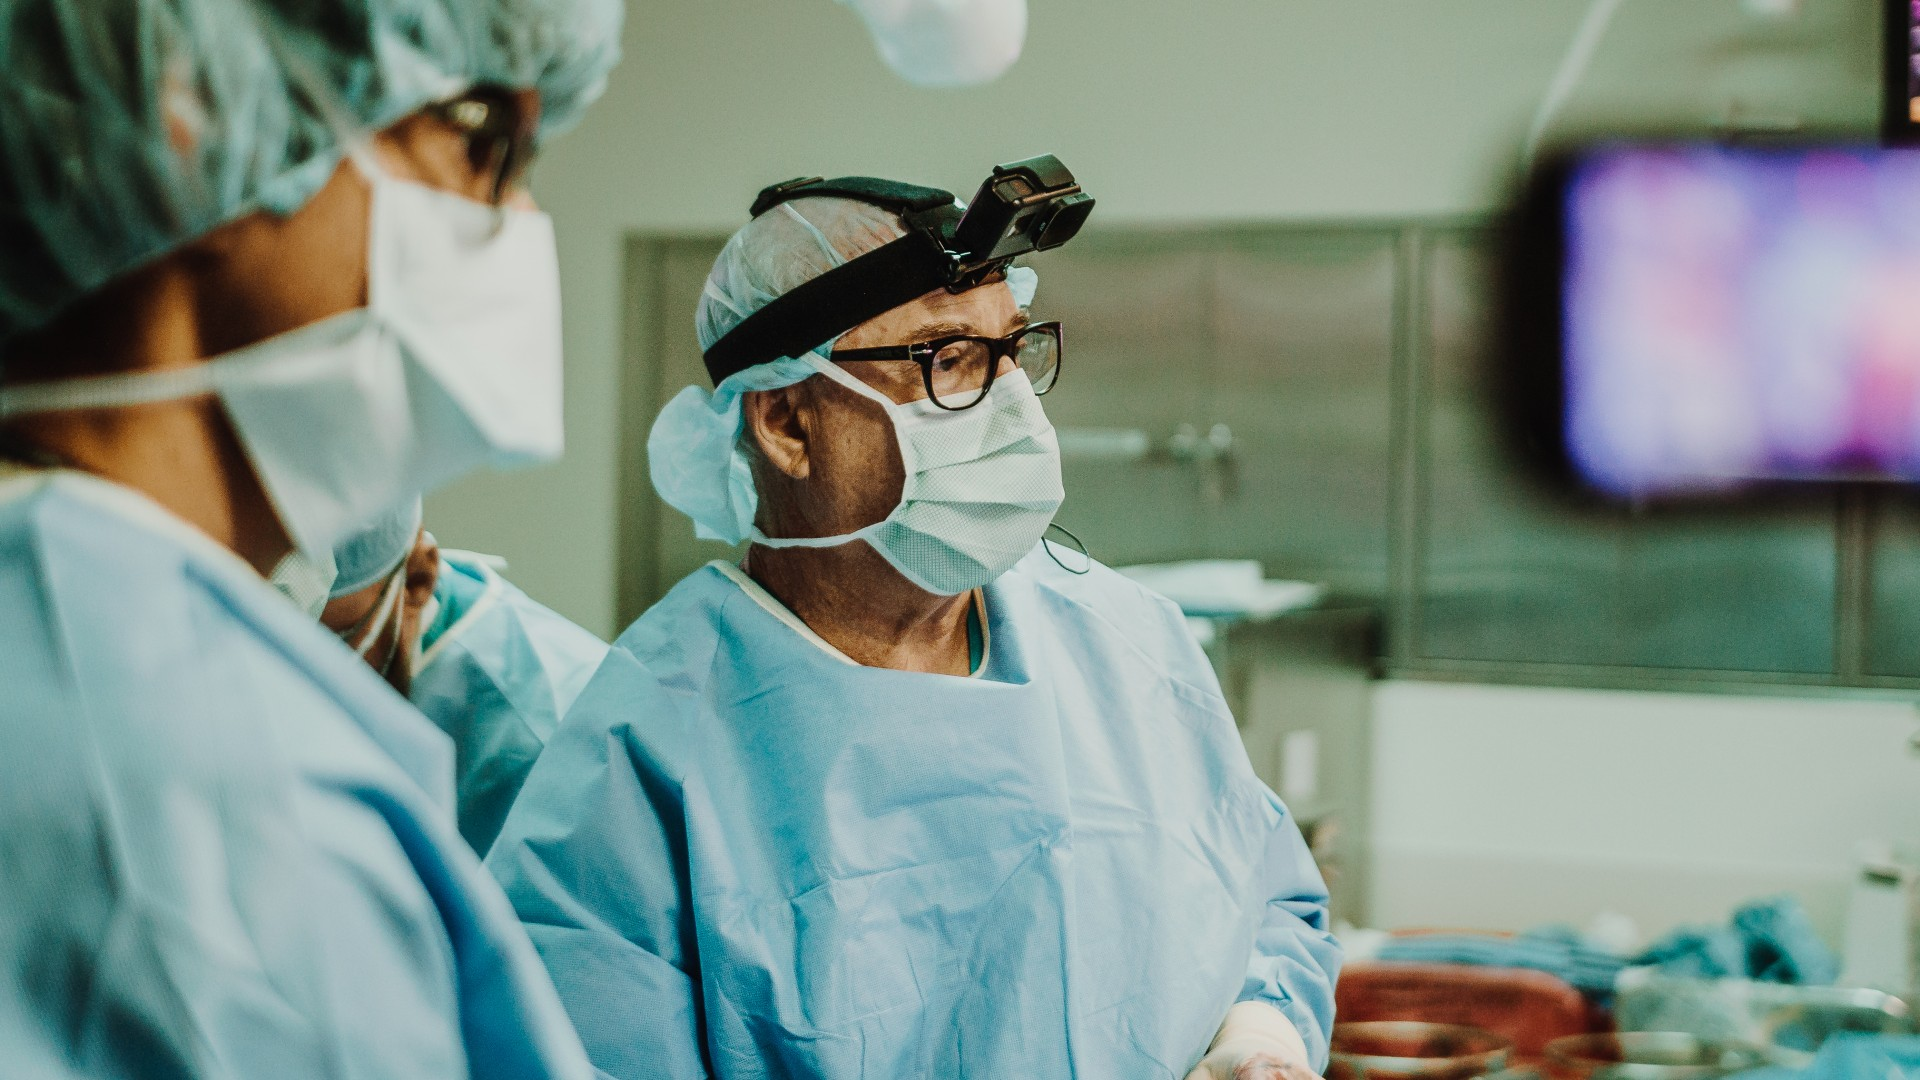 Mohan Mallipeddi, MD, on left and Ed Phillips, MD, on the right, perform surgery while the procedure is filmed in 360-degree virtual reality.  GIBLIB's camera equipment is affixed to Phillips' head for point-of-view filming. Photo courtesy of GIBLIB.